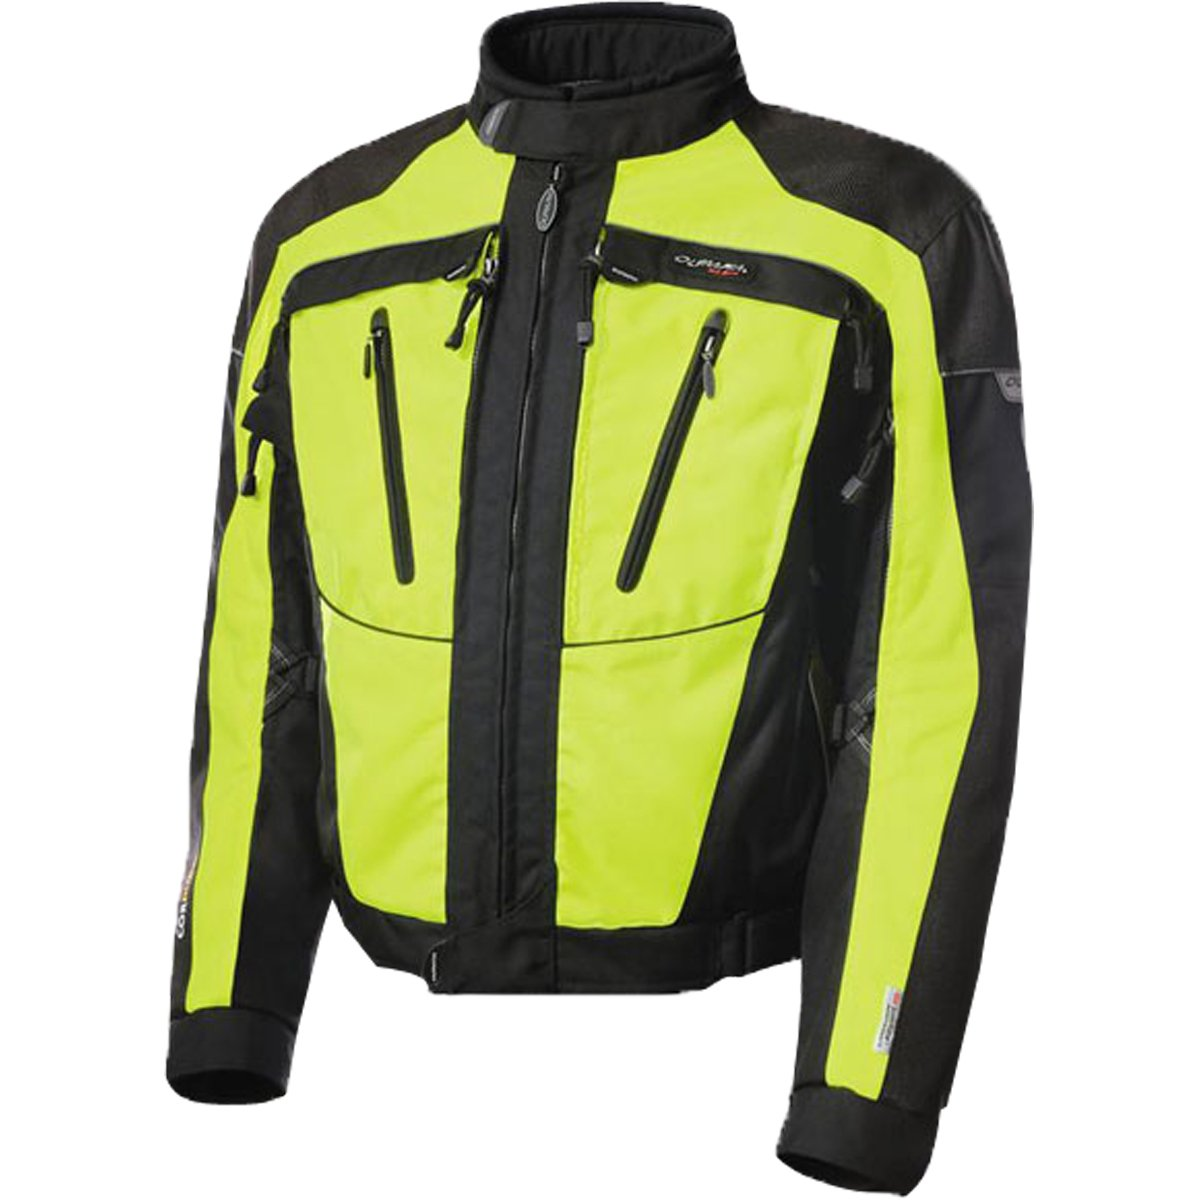 Olympia Unisex-Adult Expedition Jacket Neon Yellow Large MJ#303Z-L